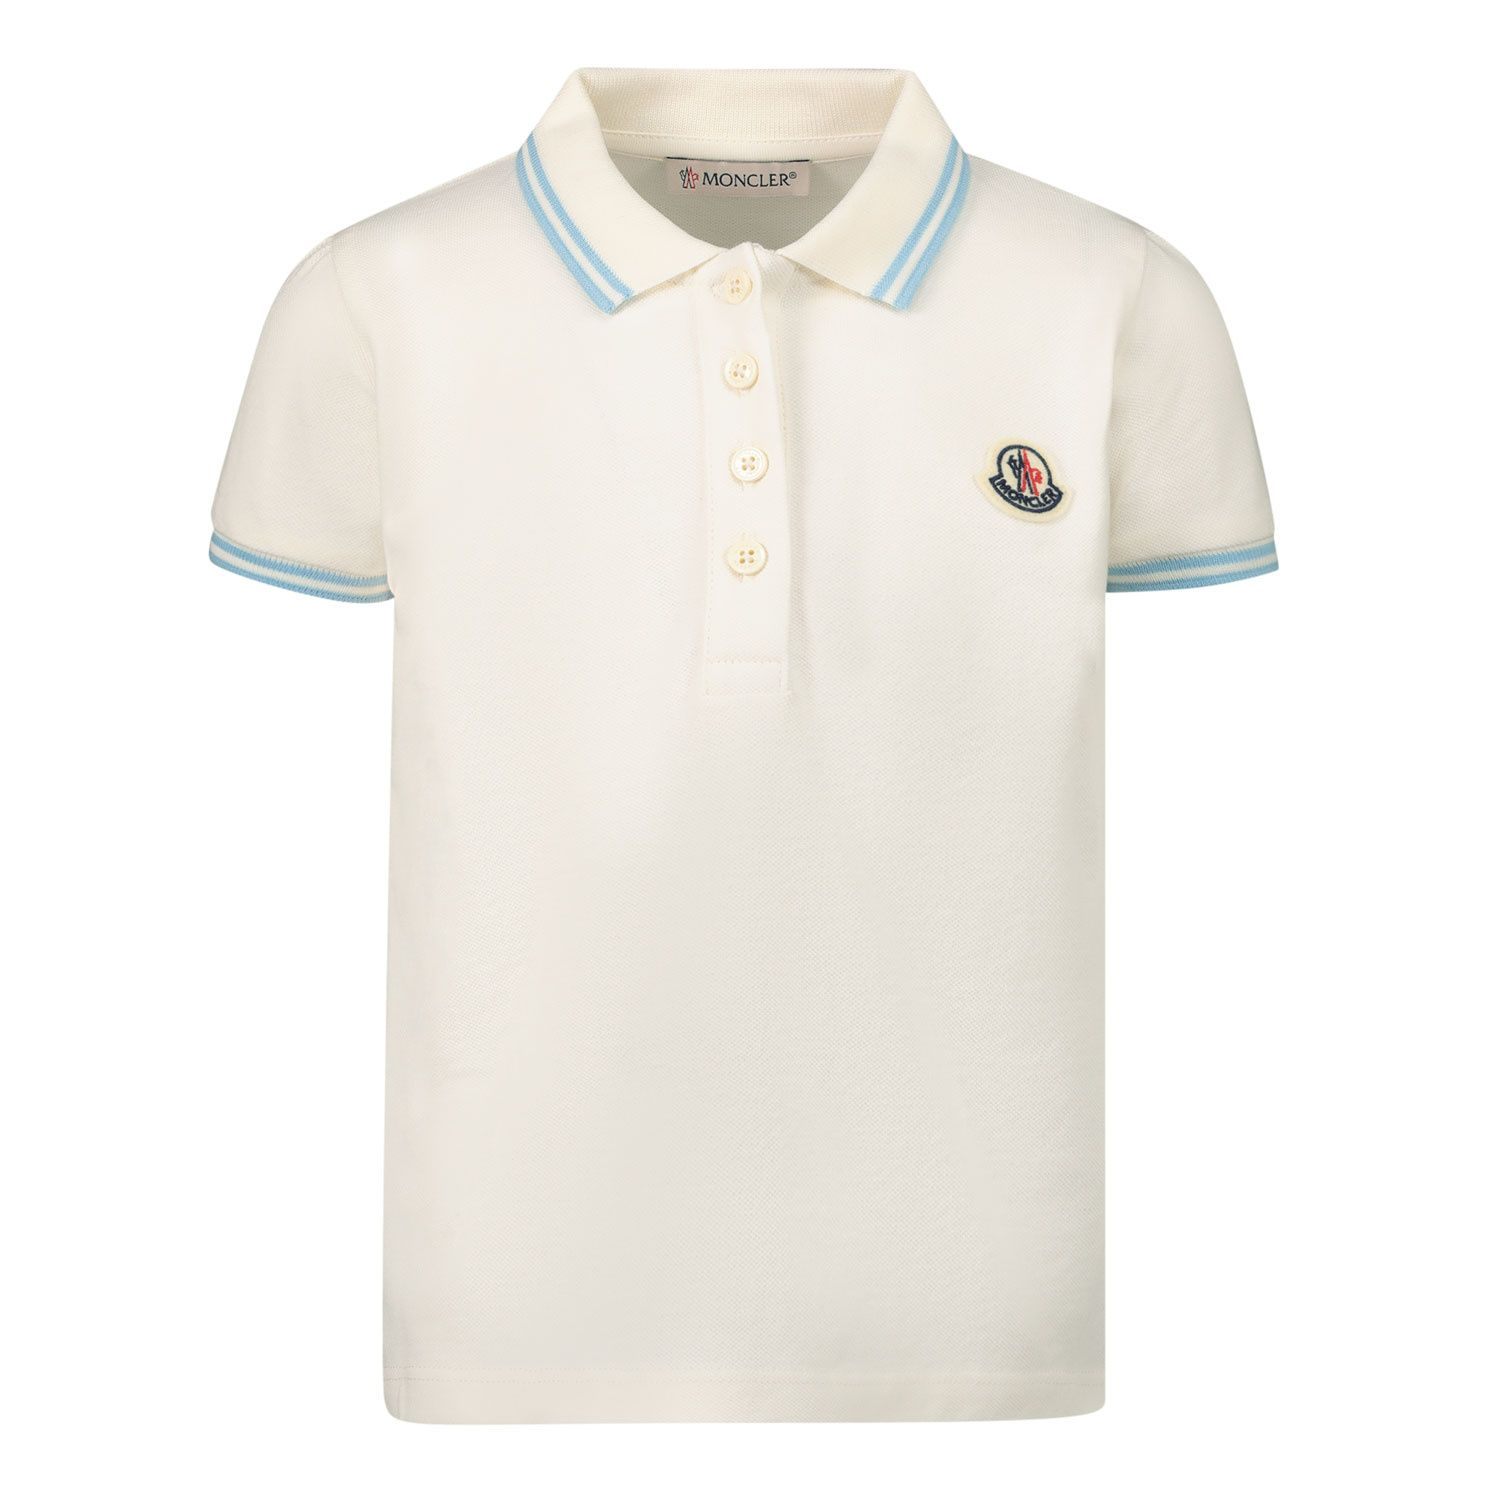 Picture of Moncler 8A70010 baby poloshirt off white